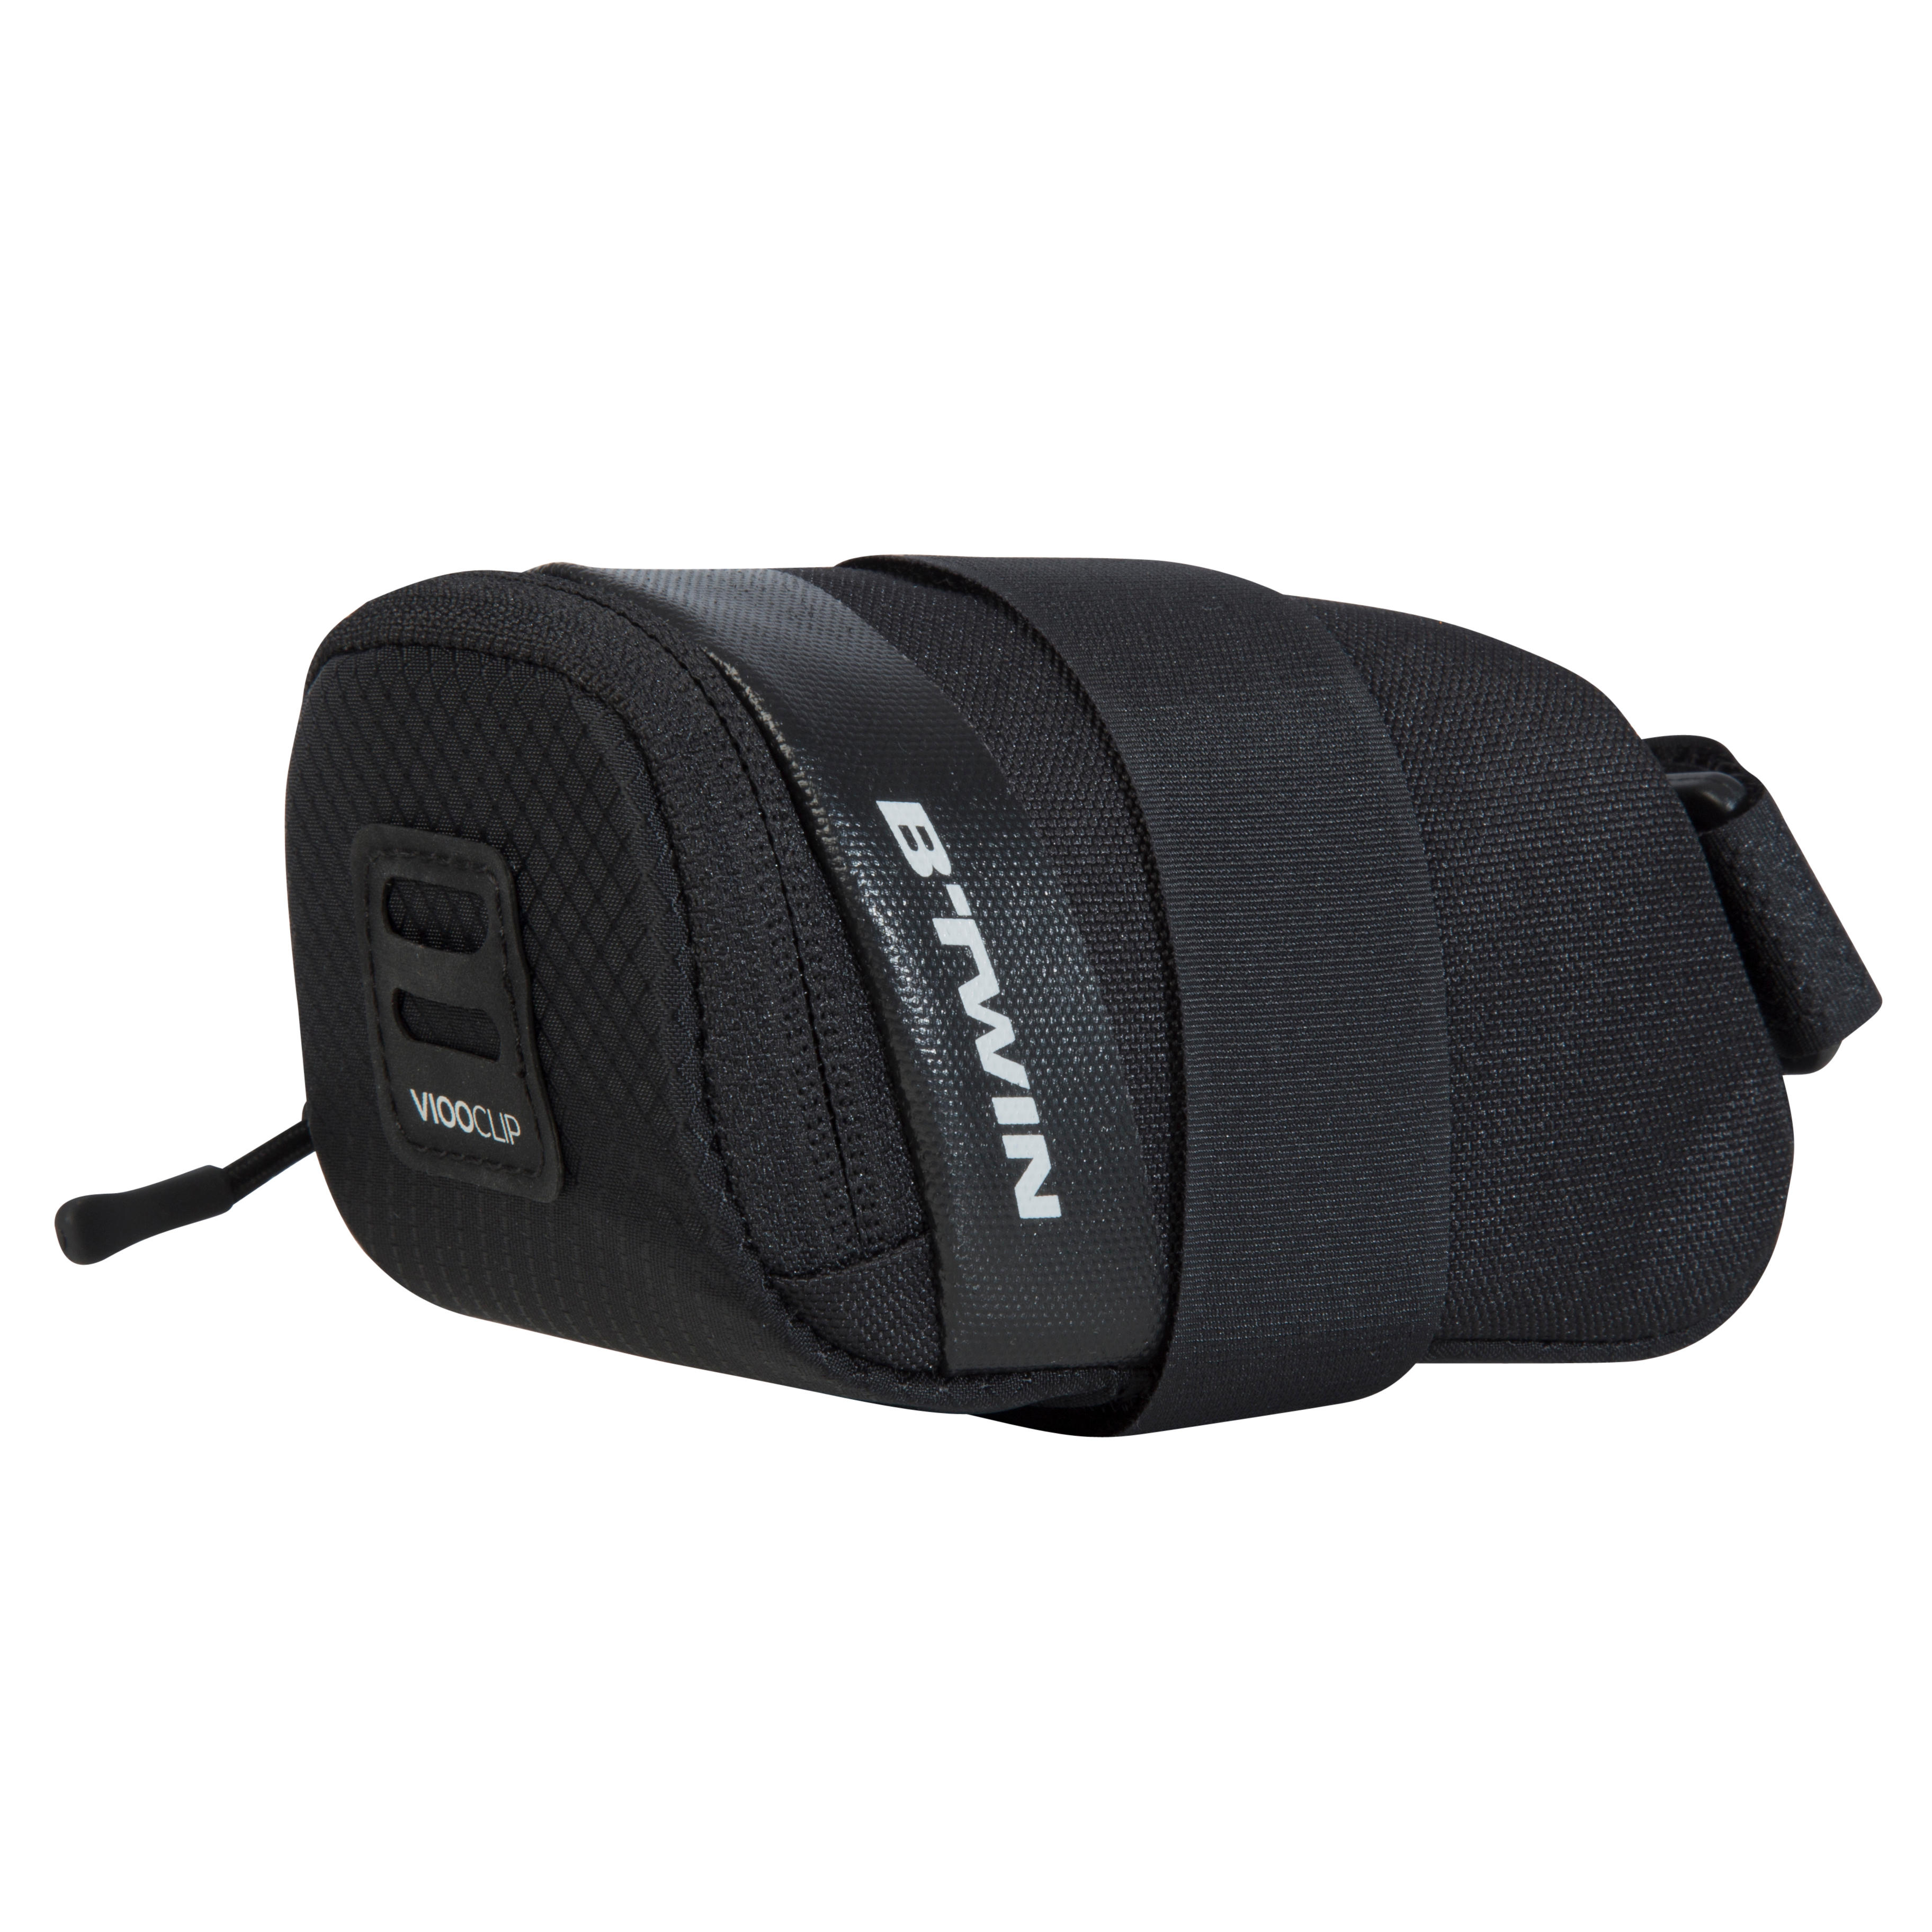 500 Bike Saddle Bag S - 0.4 L